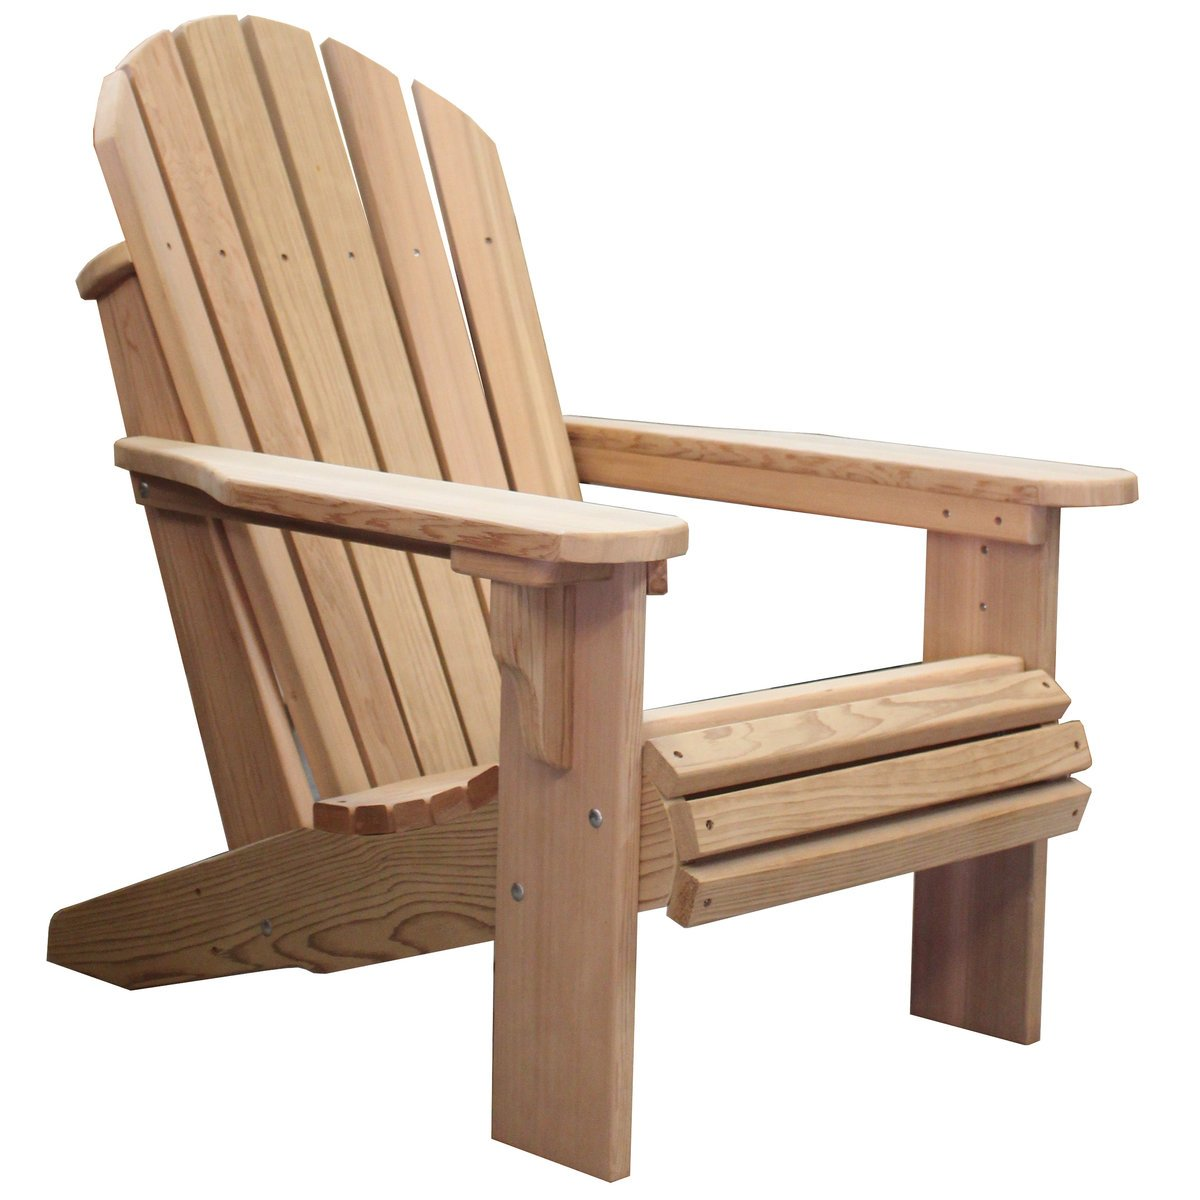 Adirondack Chairs Blueprints The Best Fitting For Your House Adirondack Chairs Home